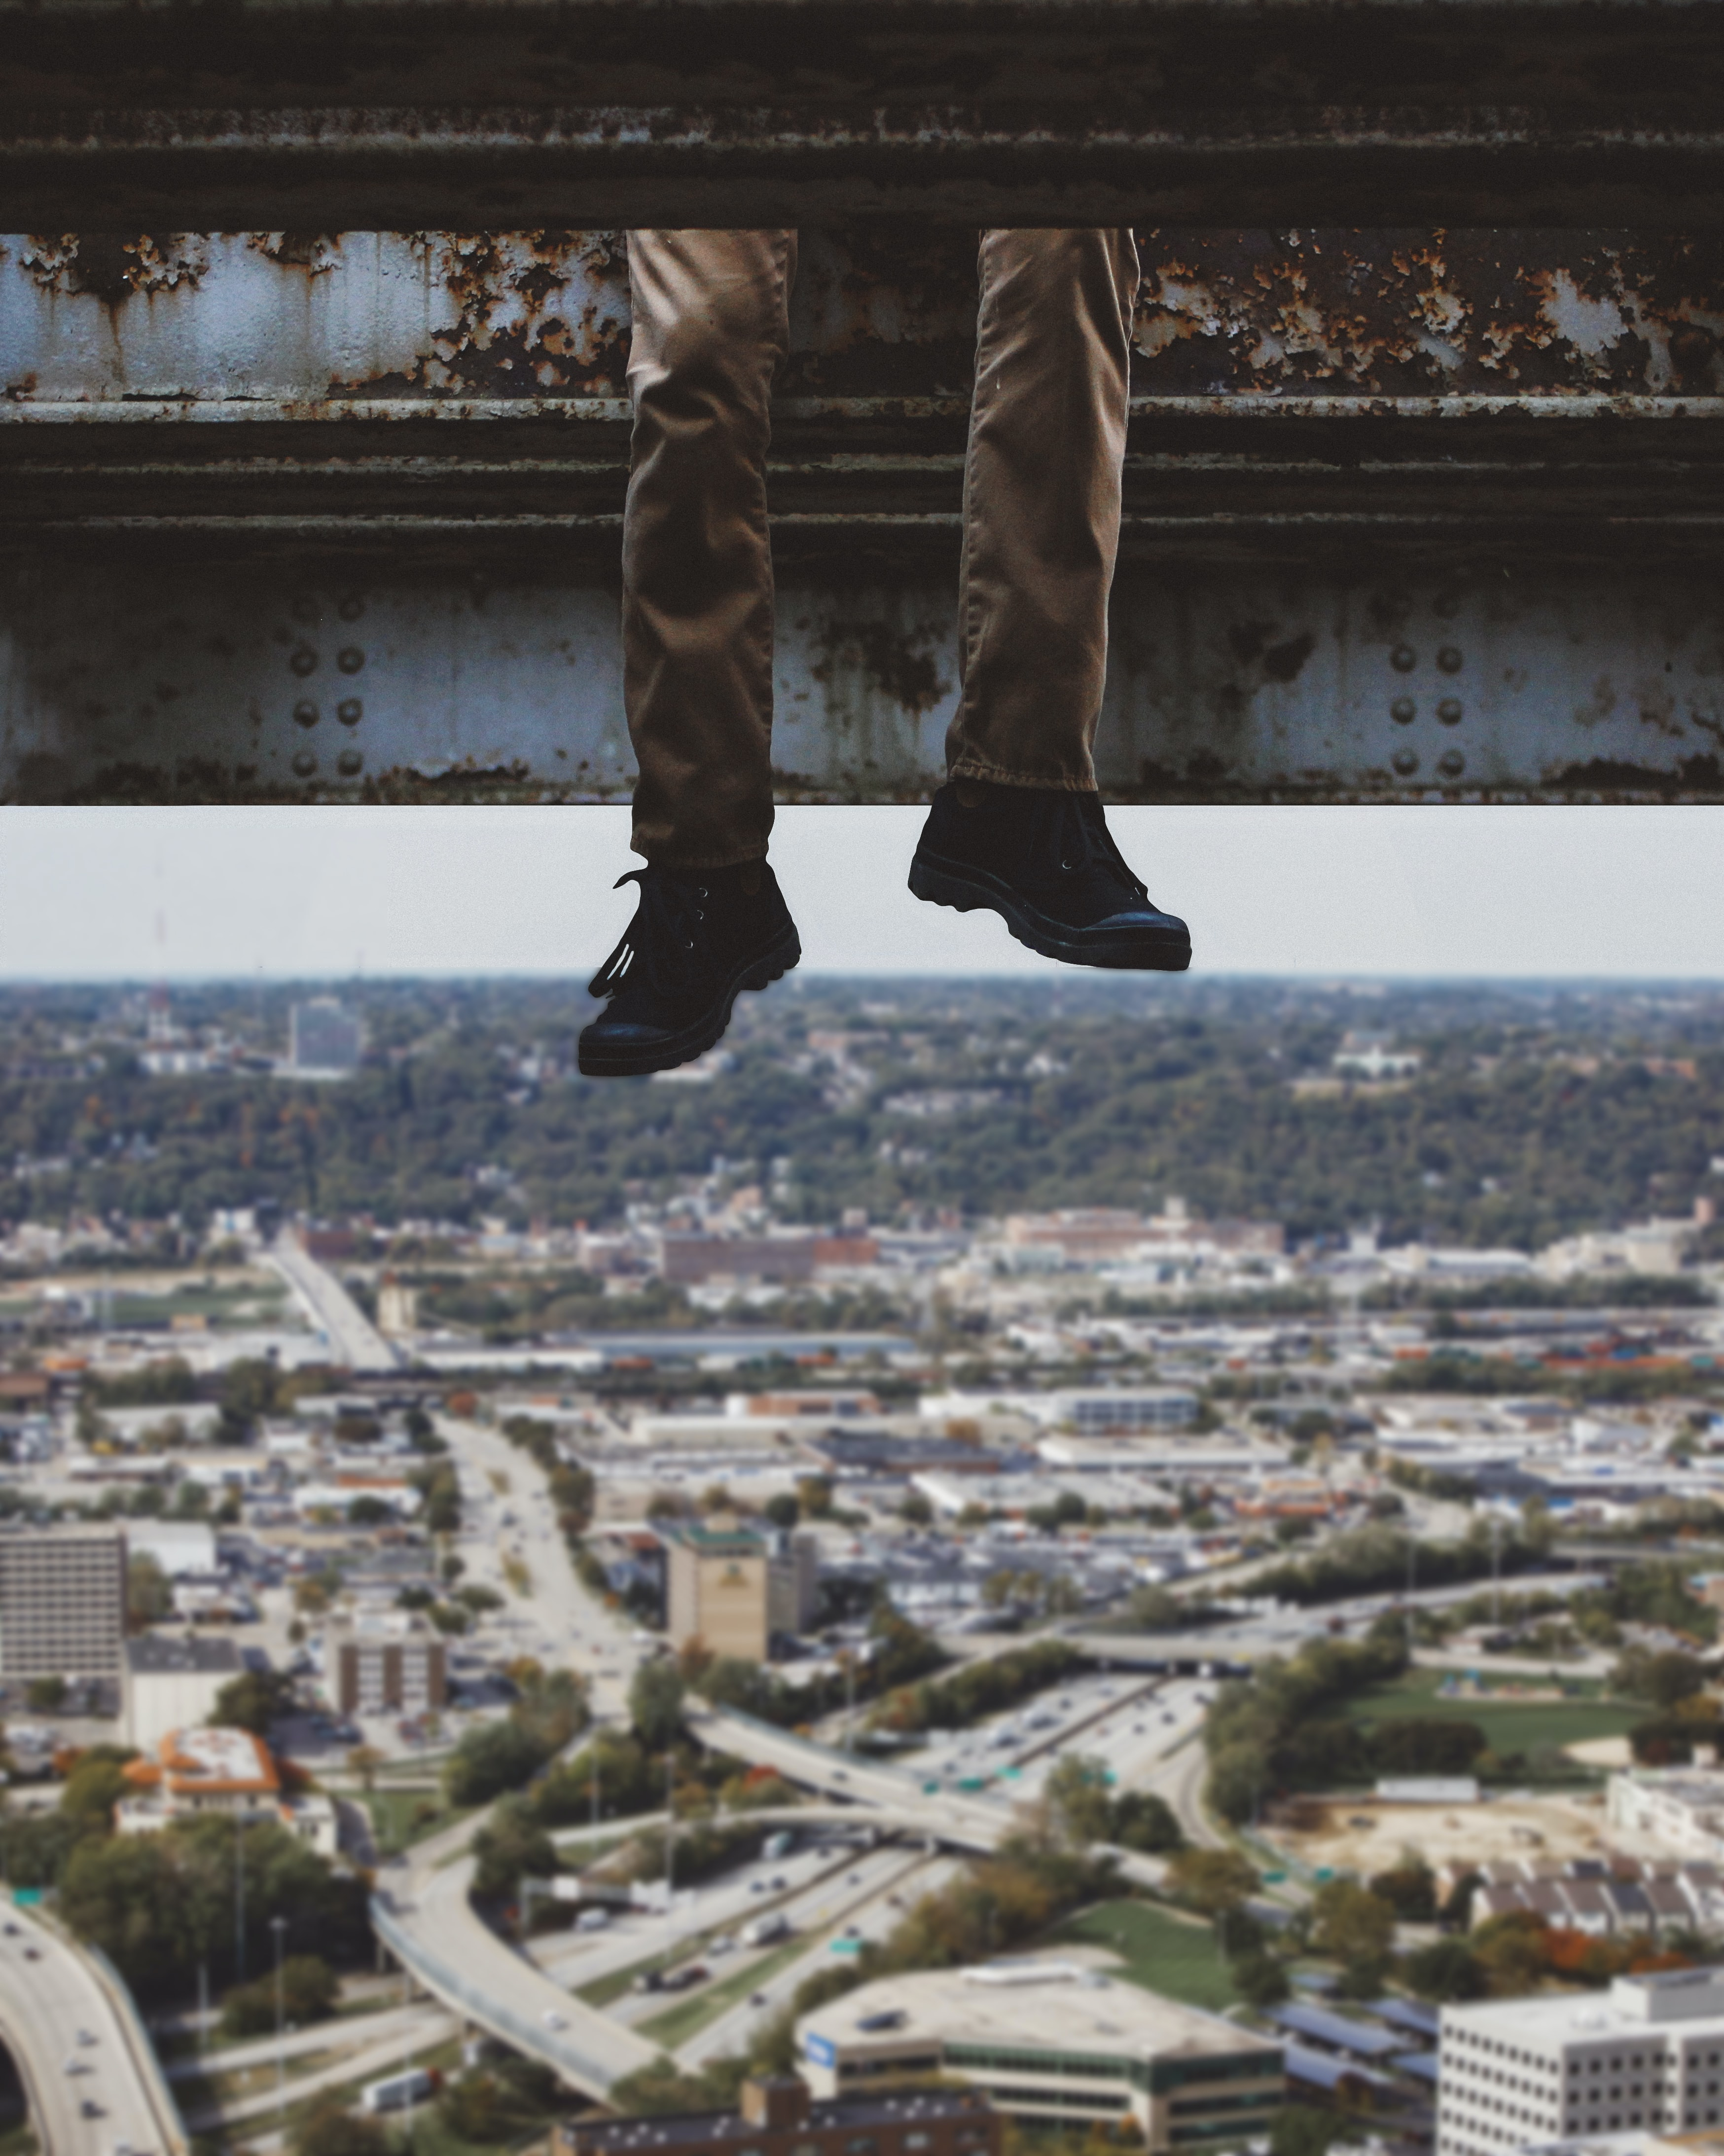 A guy sitting on a steel beam dangling his legs over the city of Cincinnati